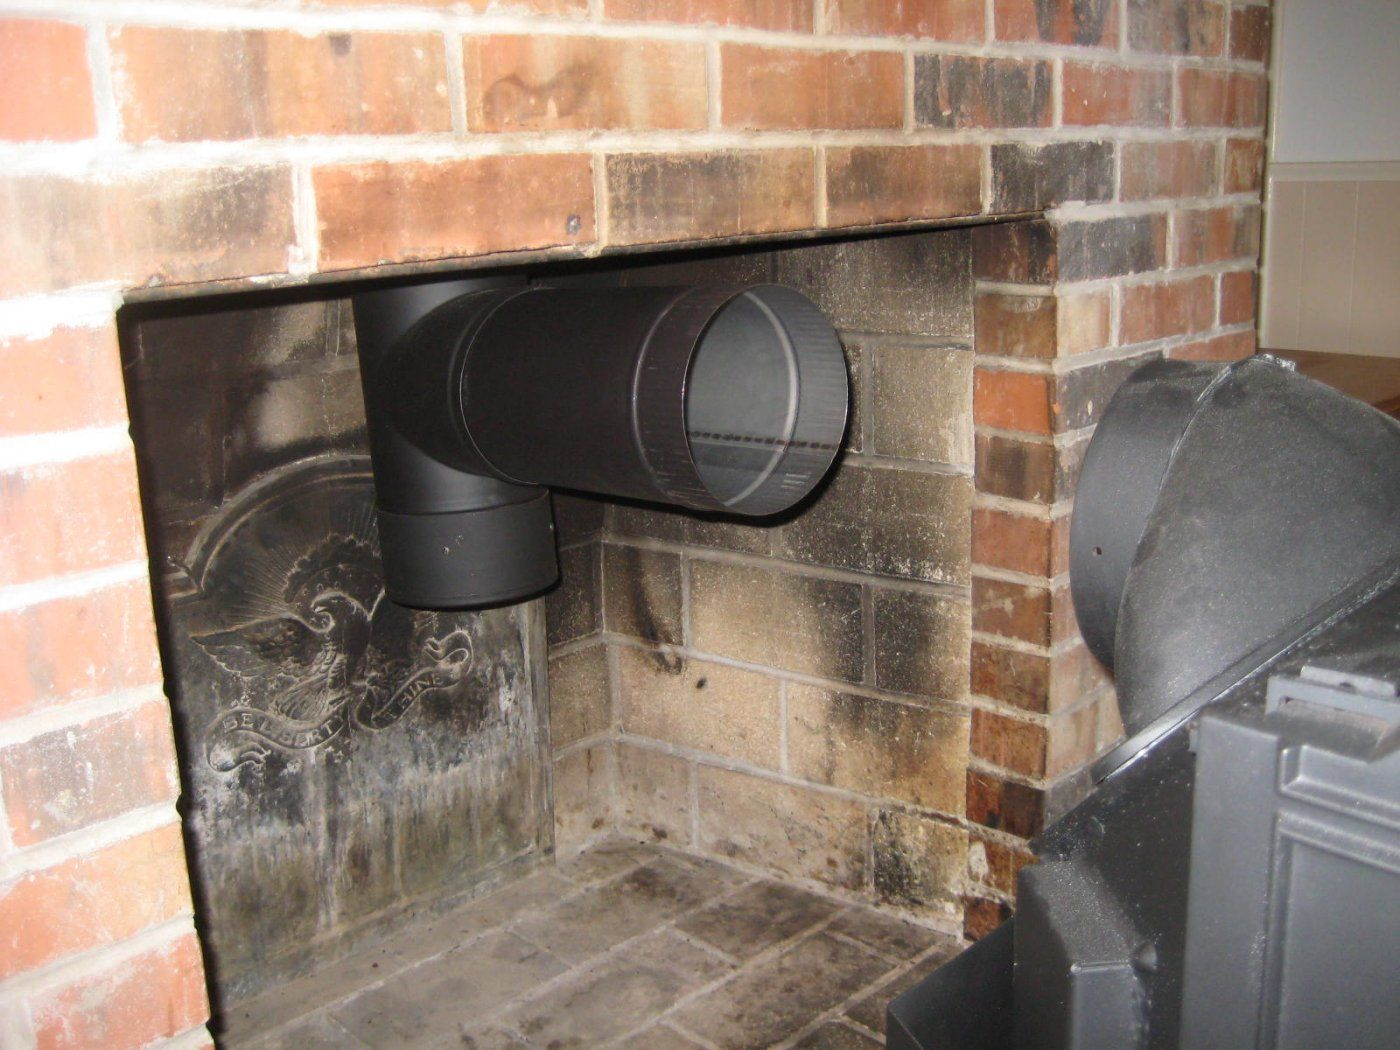 IMG_3248.jpg - Rear Vent Wood Stove Through Masonry Fireplace Hearth.com Forums